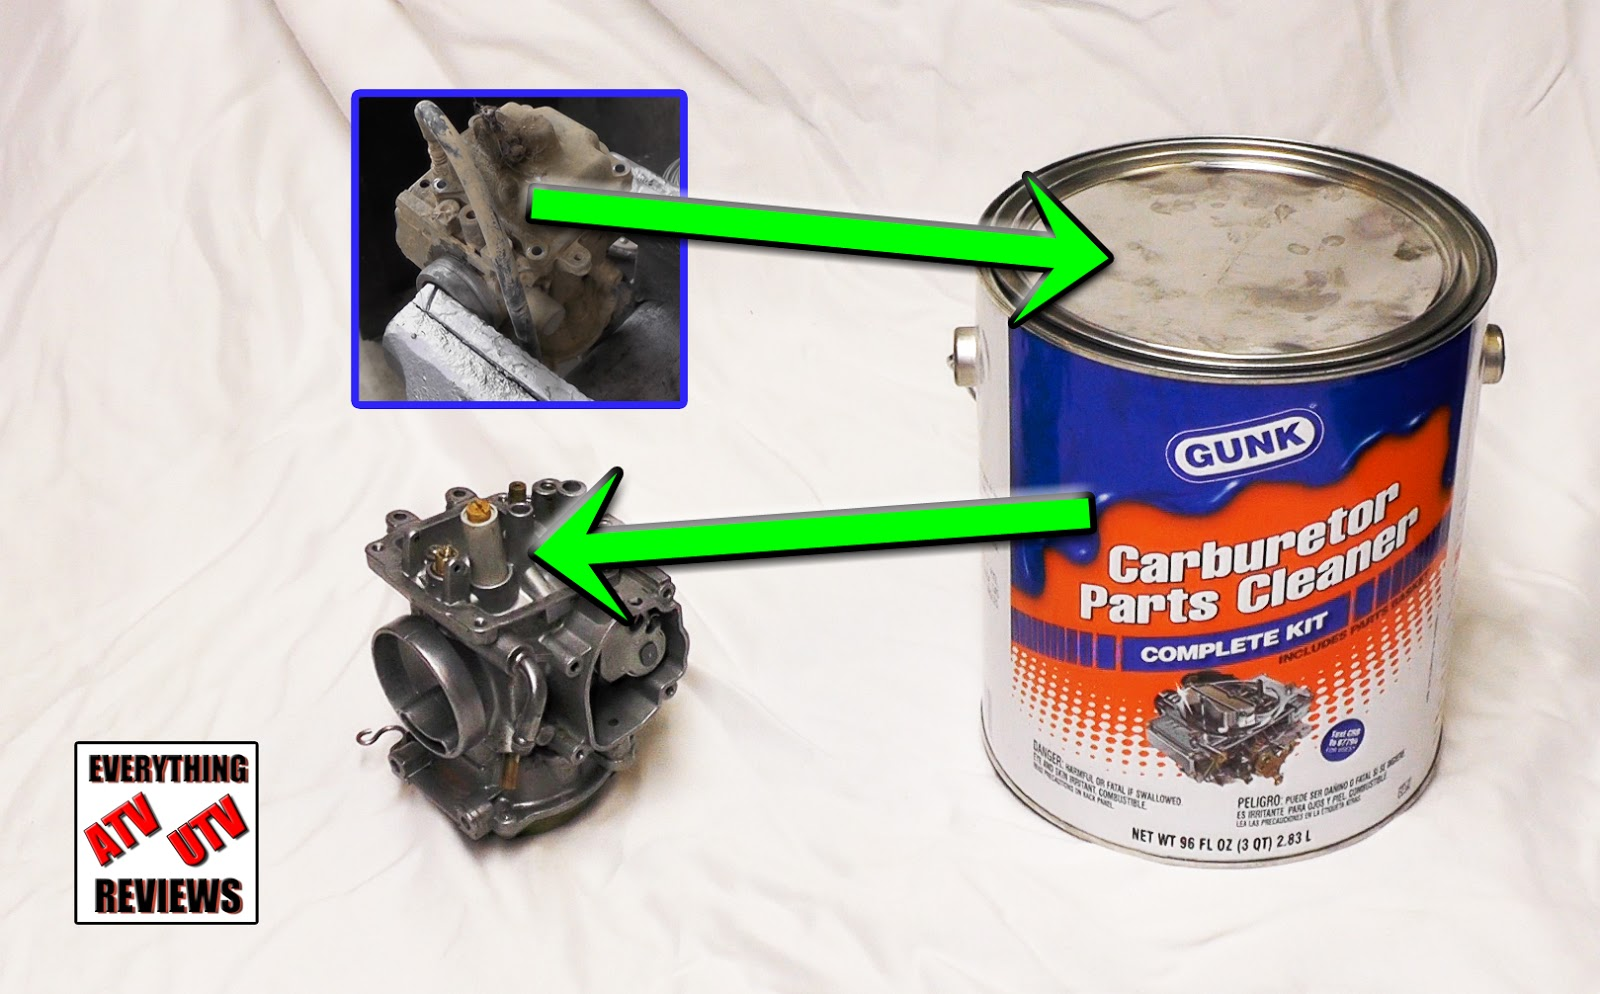 Before You Give Up On Cleaning And Rebuilding Re Old Dirty Atv Carb Look At This Product By Gunk Over The Years I Ve Used Tried Many Diffe